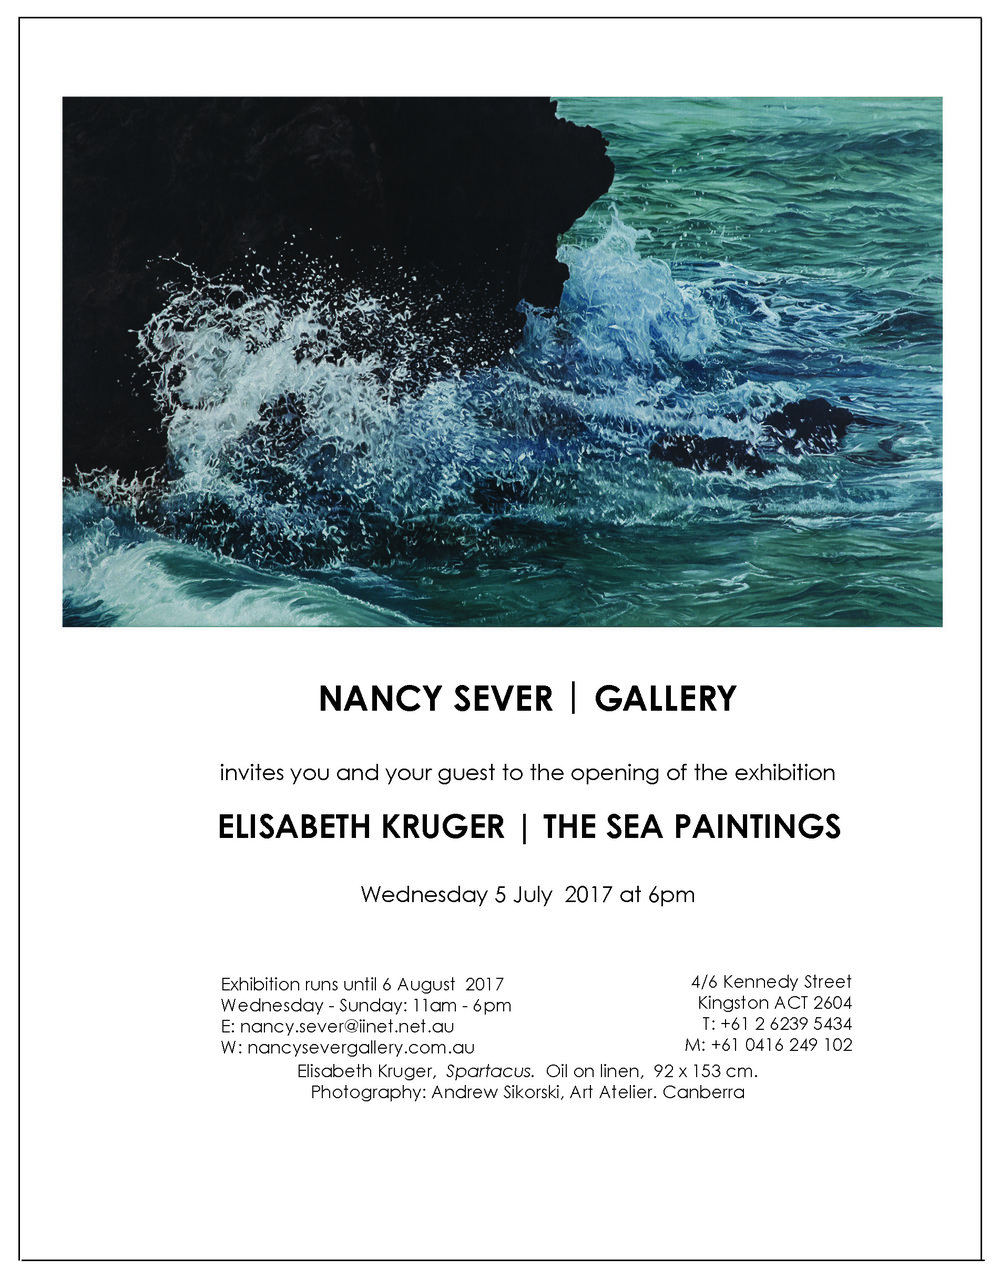 NSG.Elisabeth Kruger exhibition electronic invitation.jpg